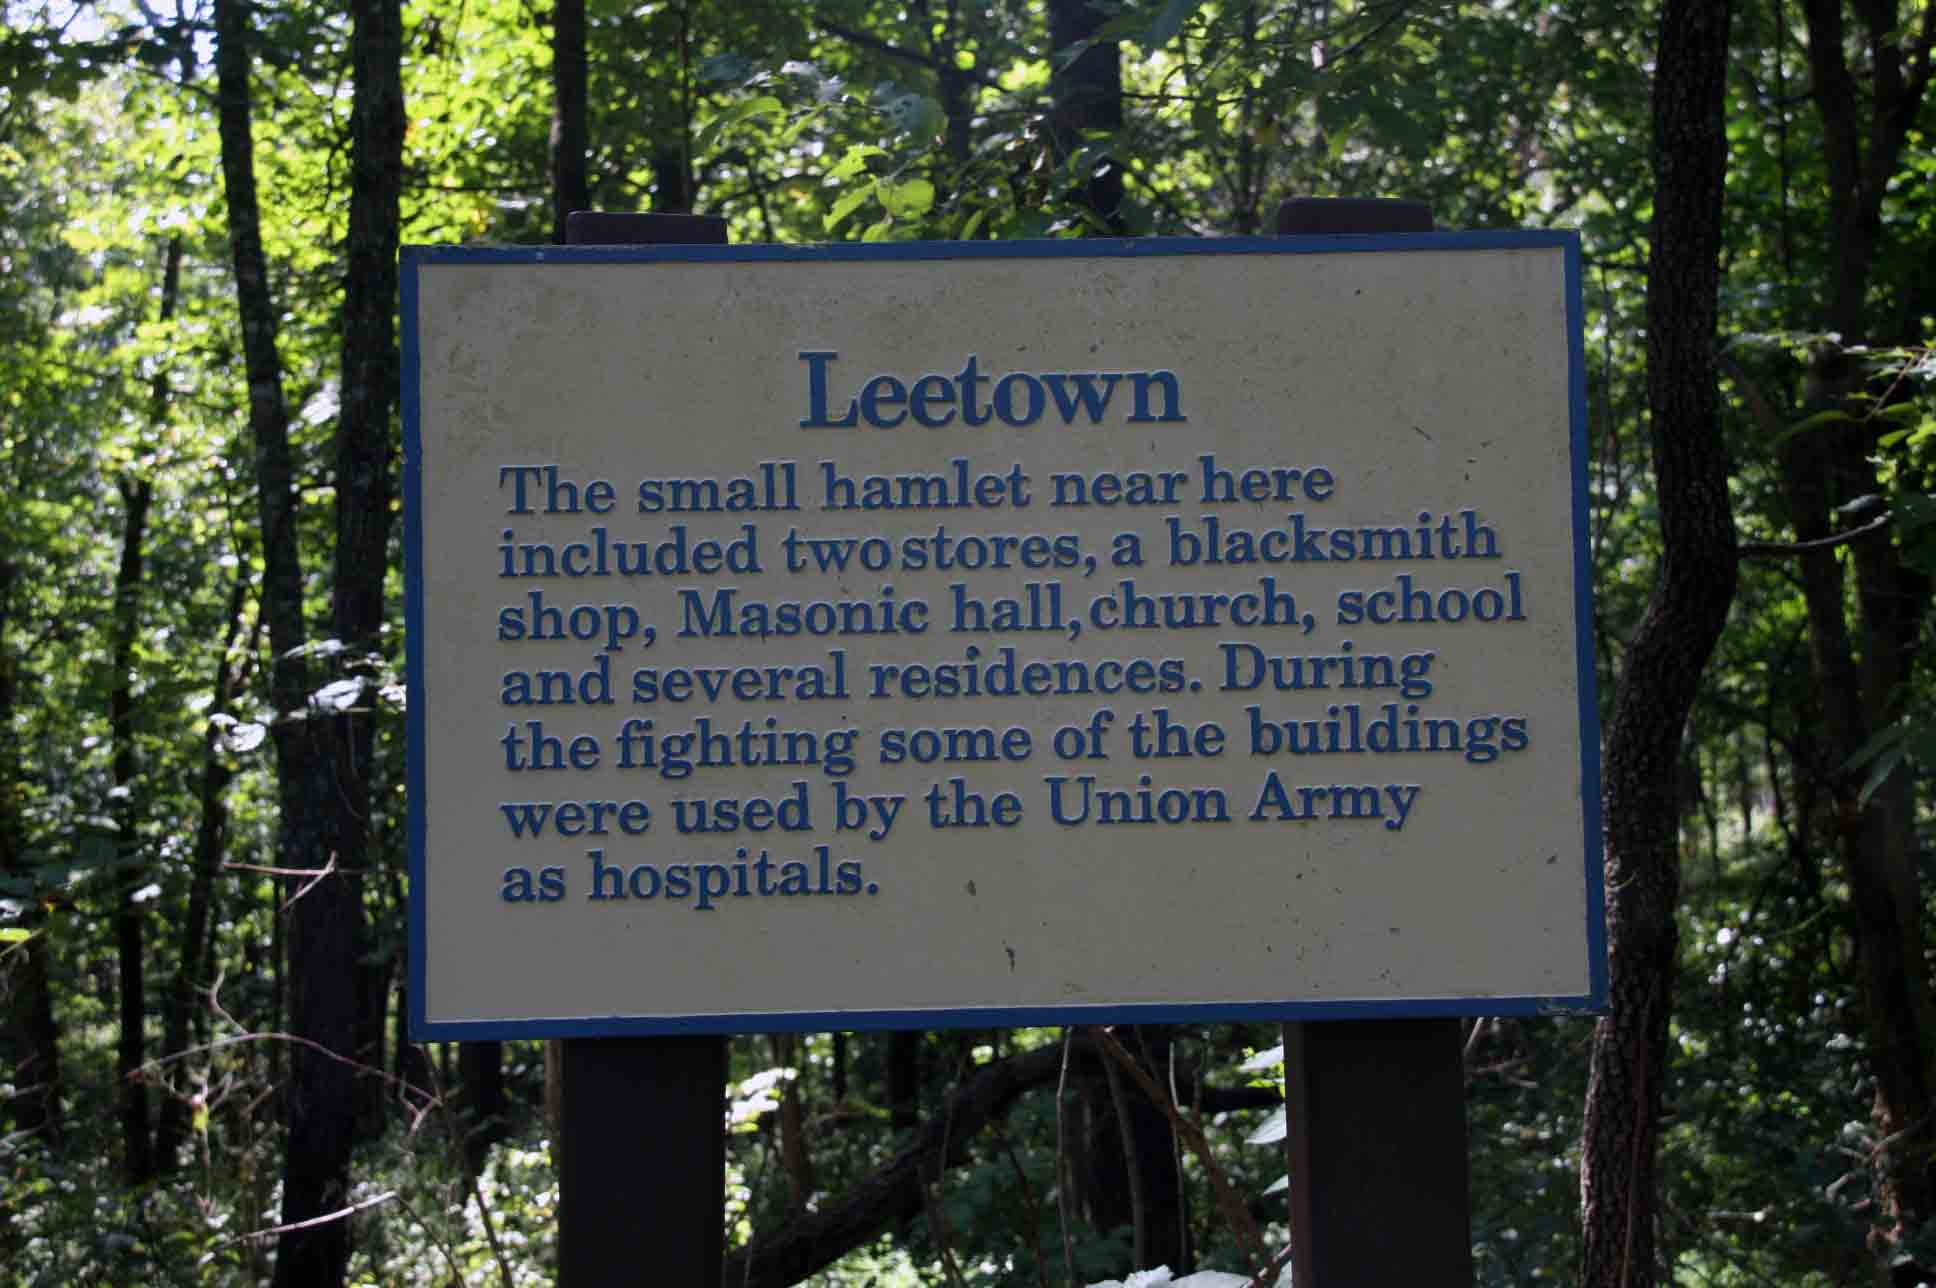 Leetown, click photo to enlarge.